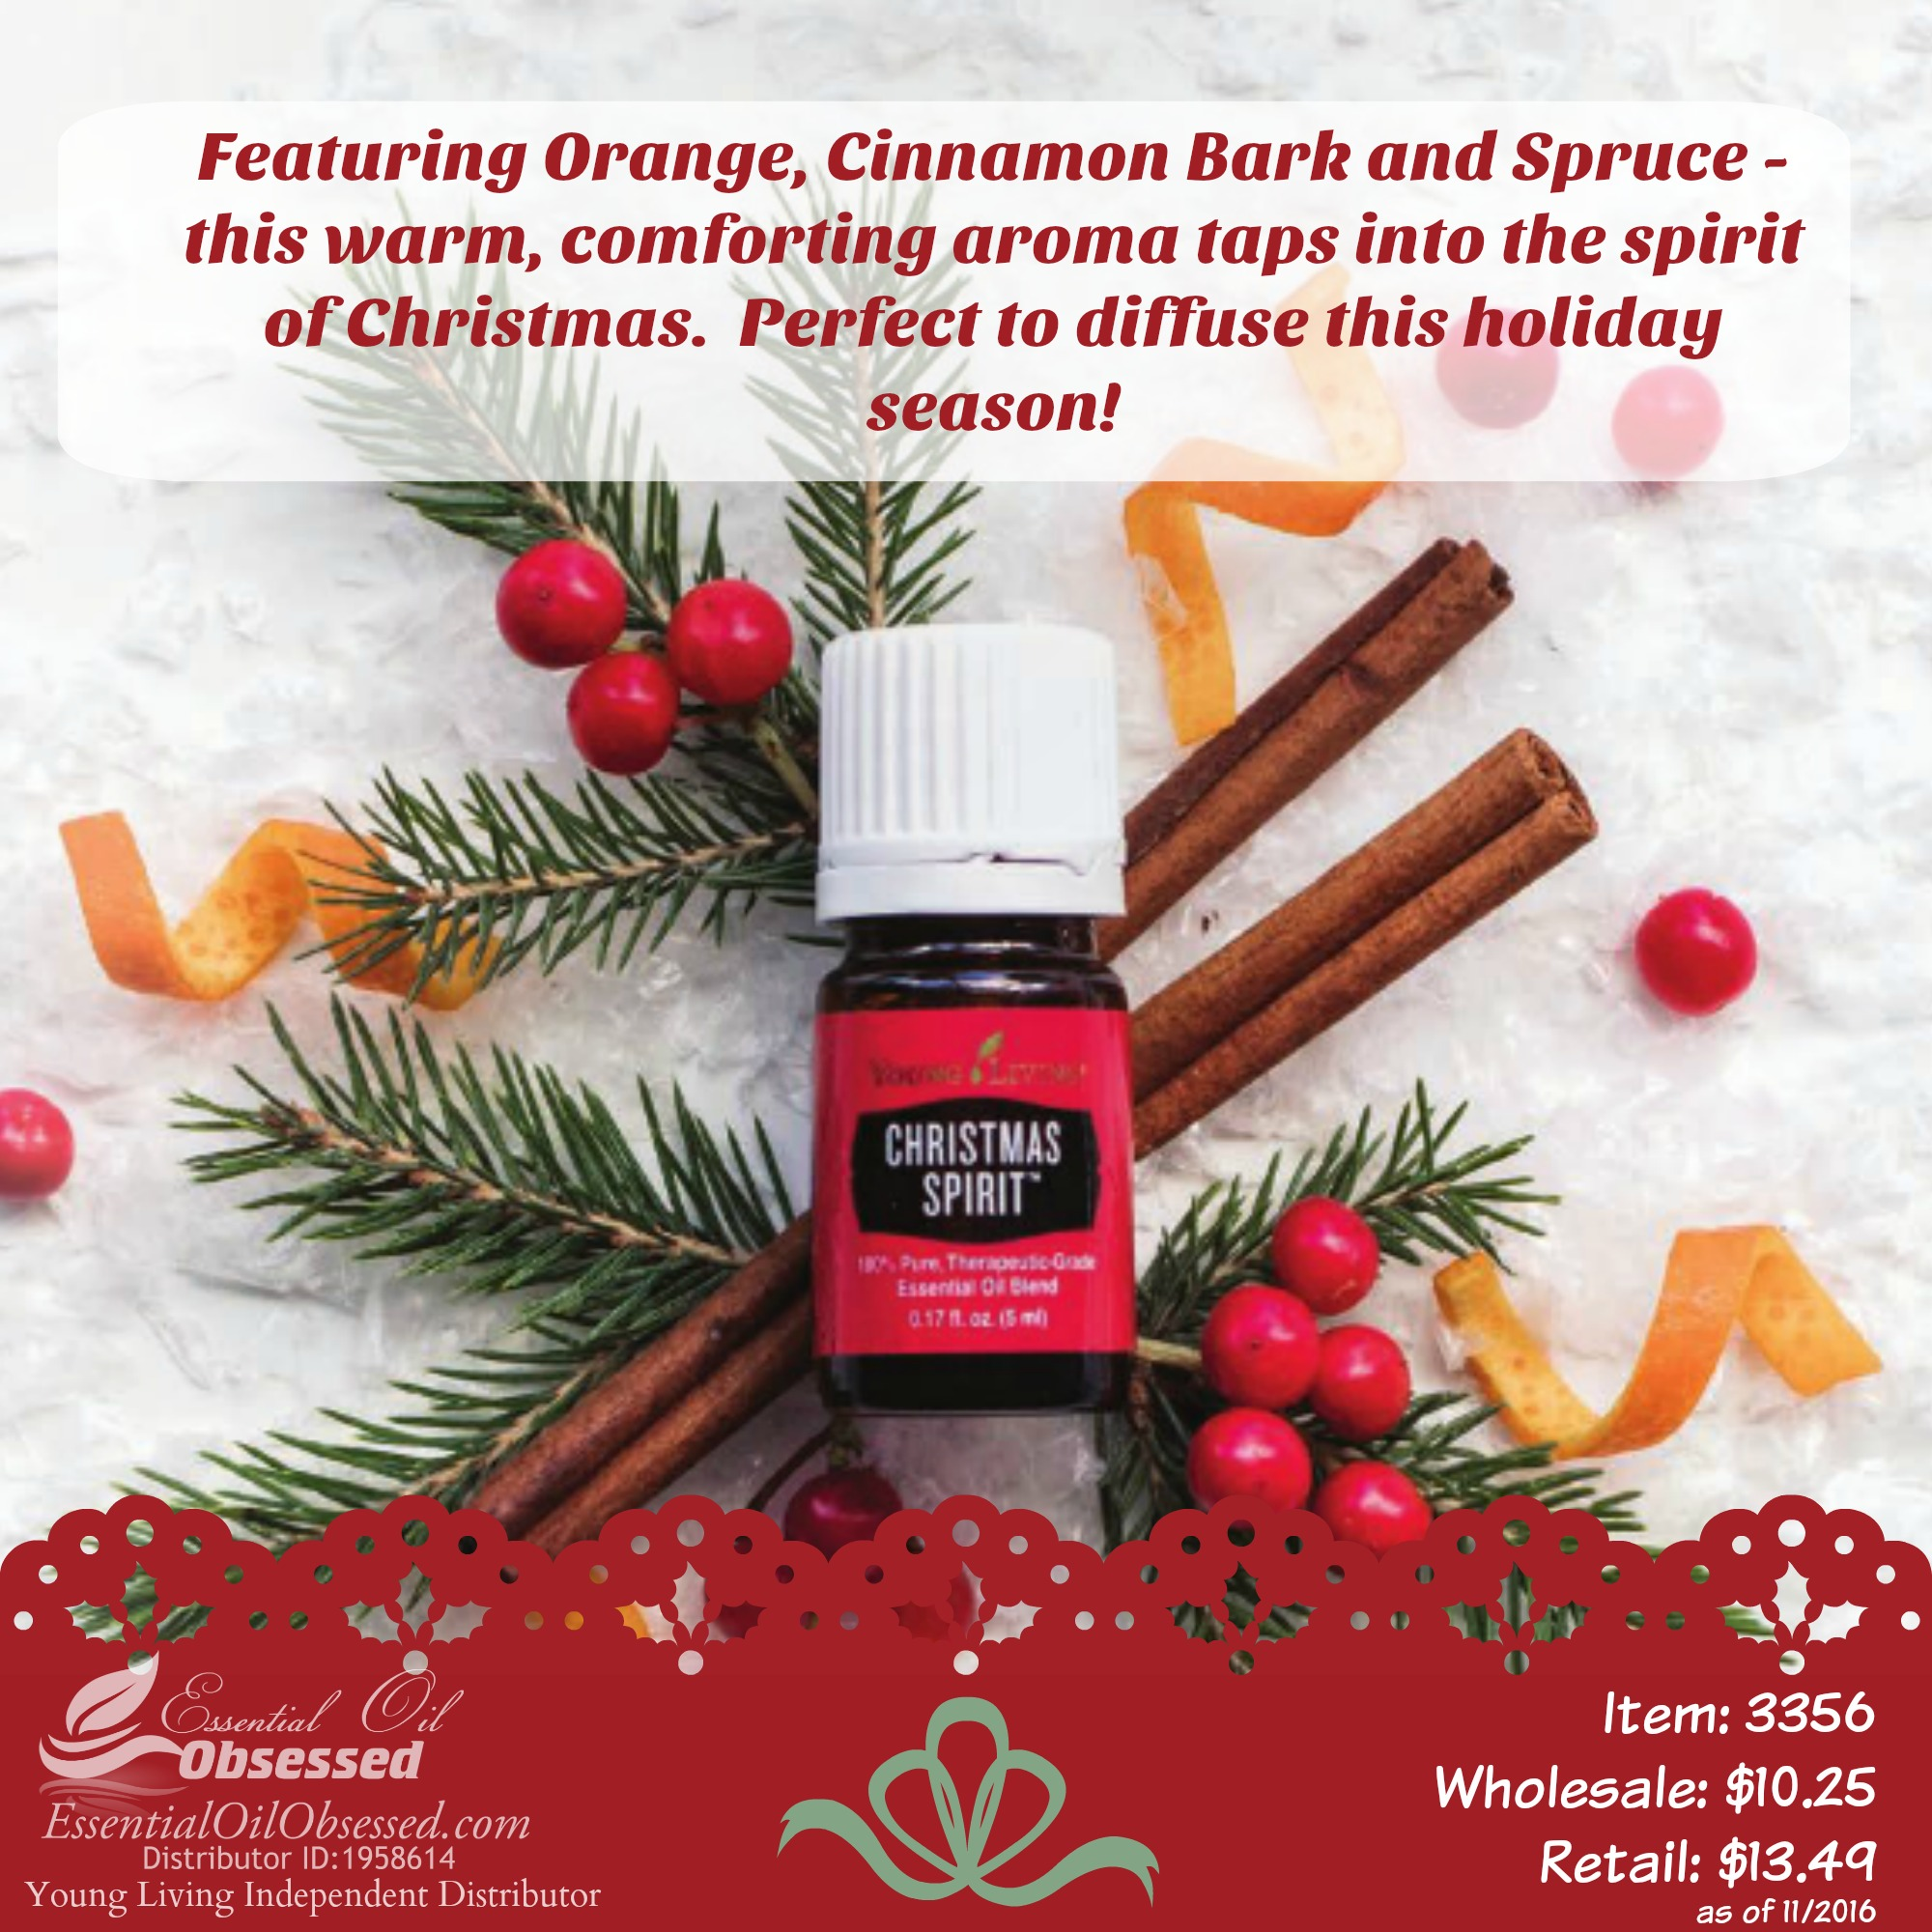 Young living essential oils essential oil obsessed for Christmas spirit ideas